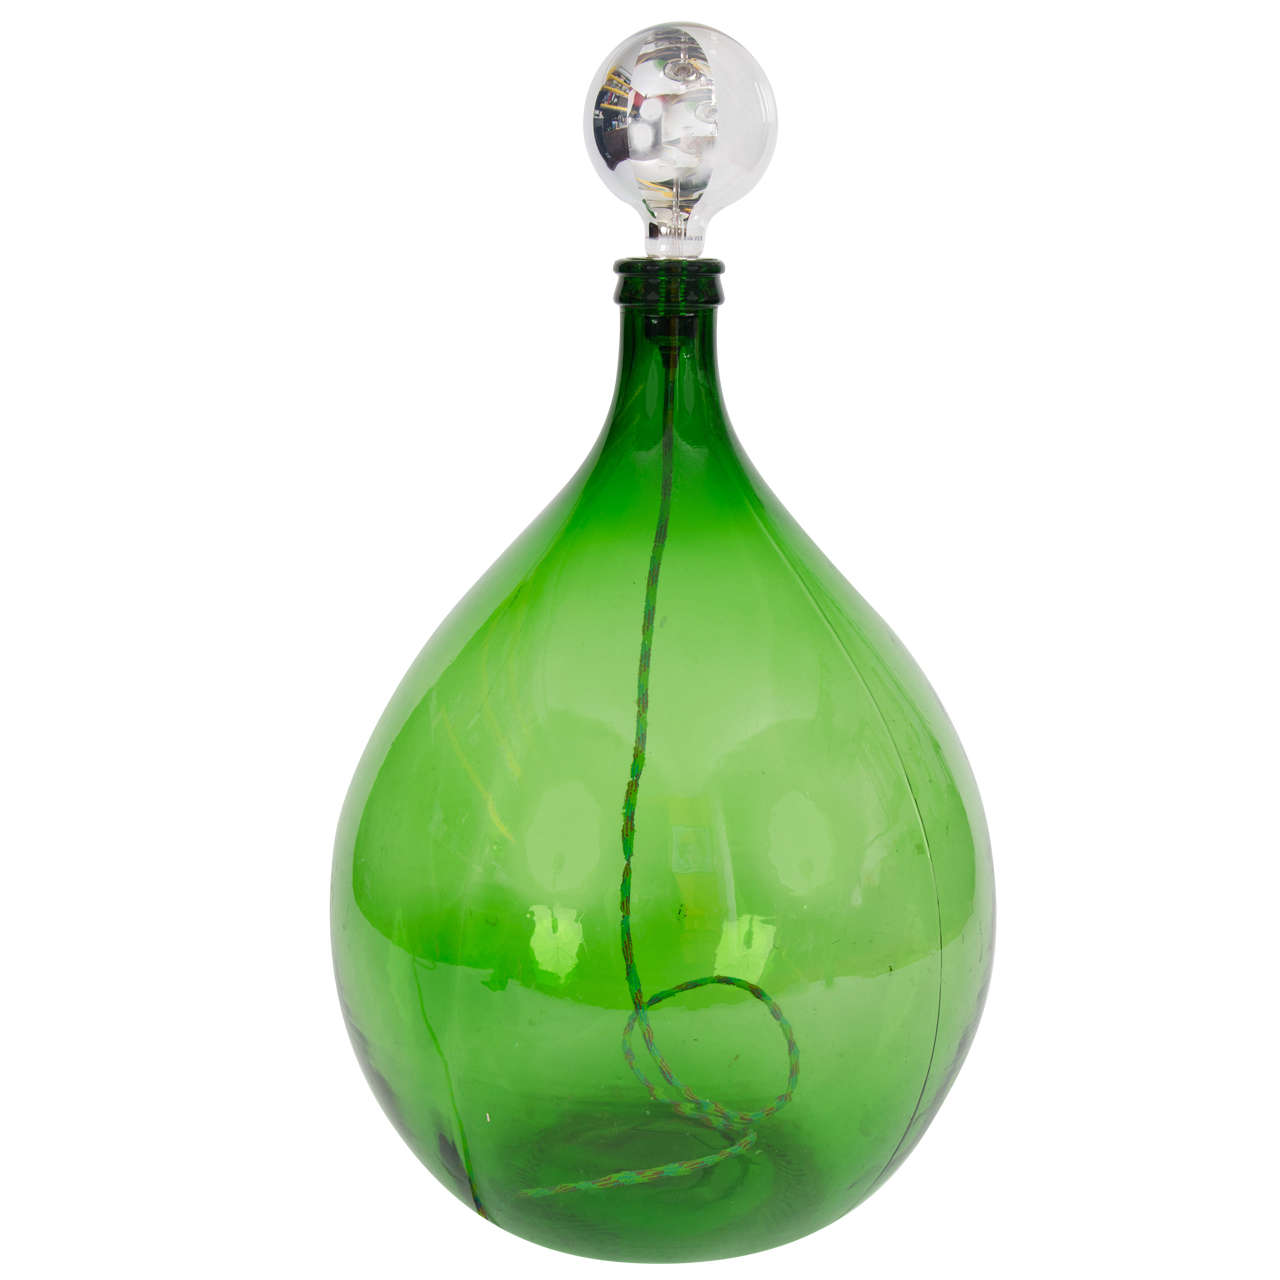 Vintage Bohemian/Rustic Handmade Green Demijohn Glass Bottle Table/Floor Lamp